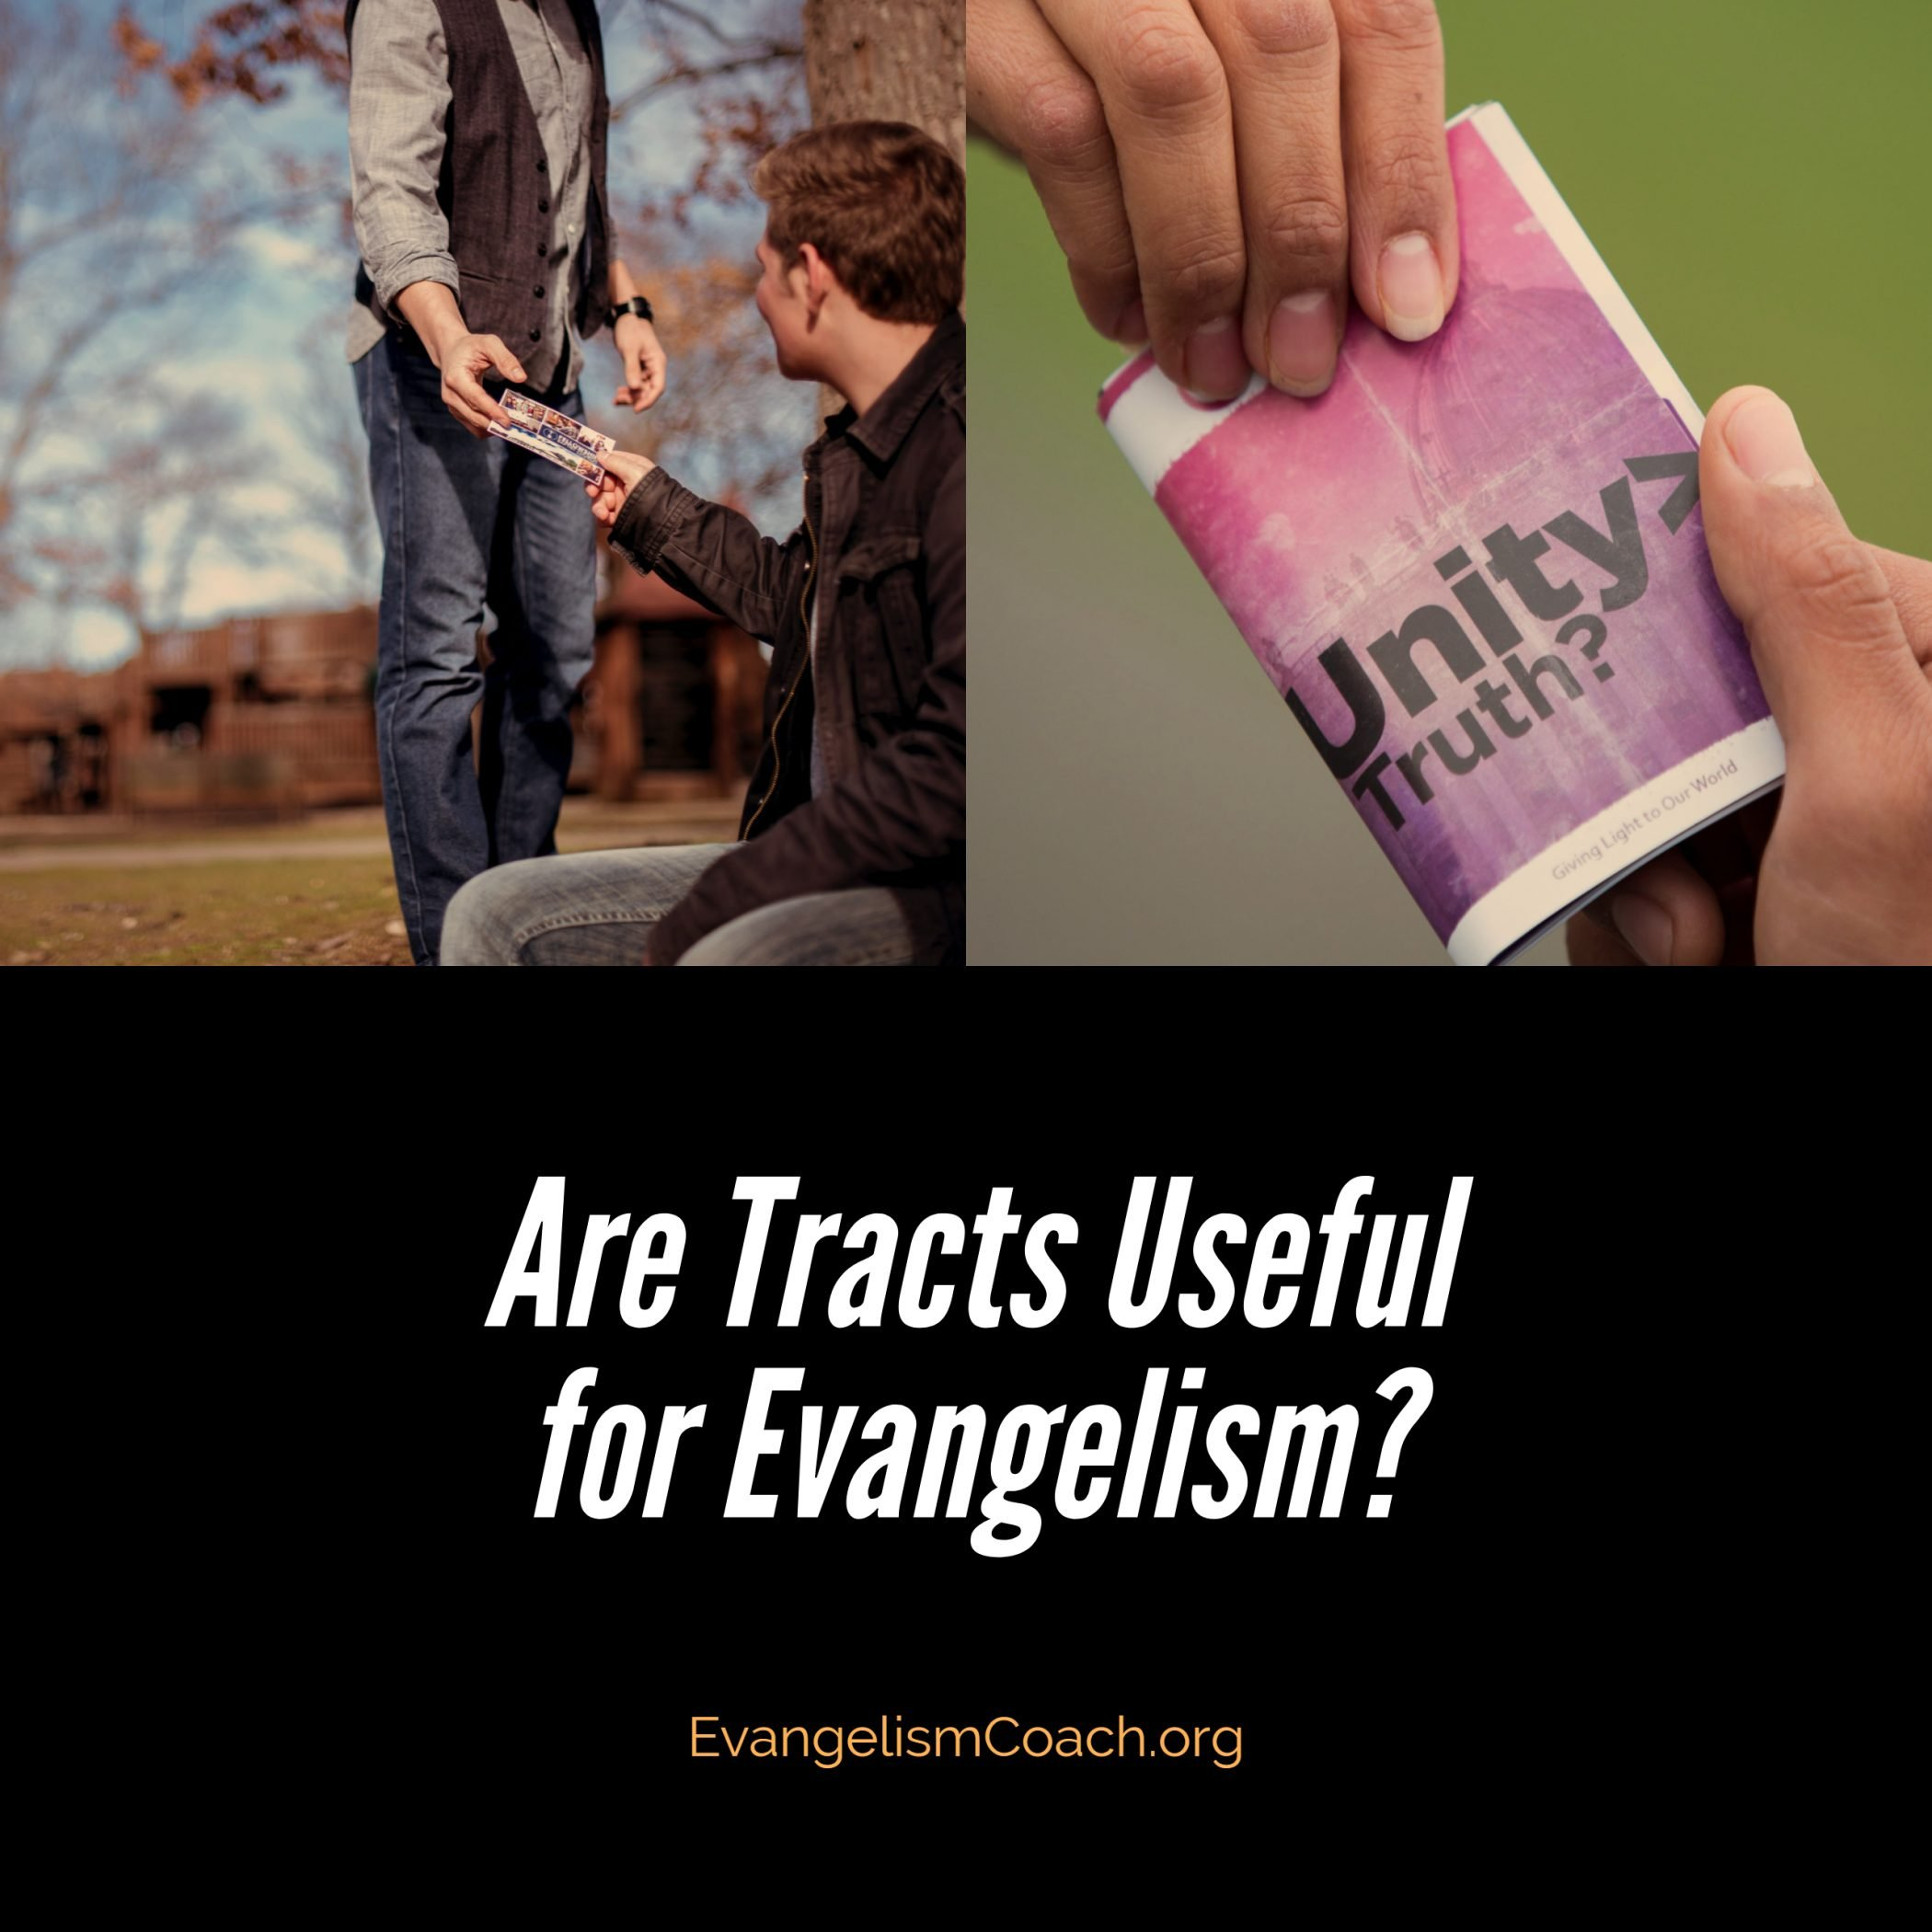 Using Tracts for Evangelism